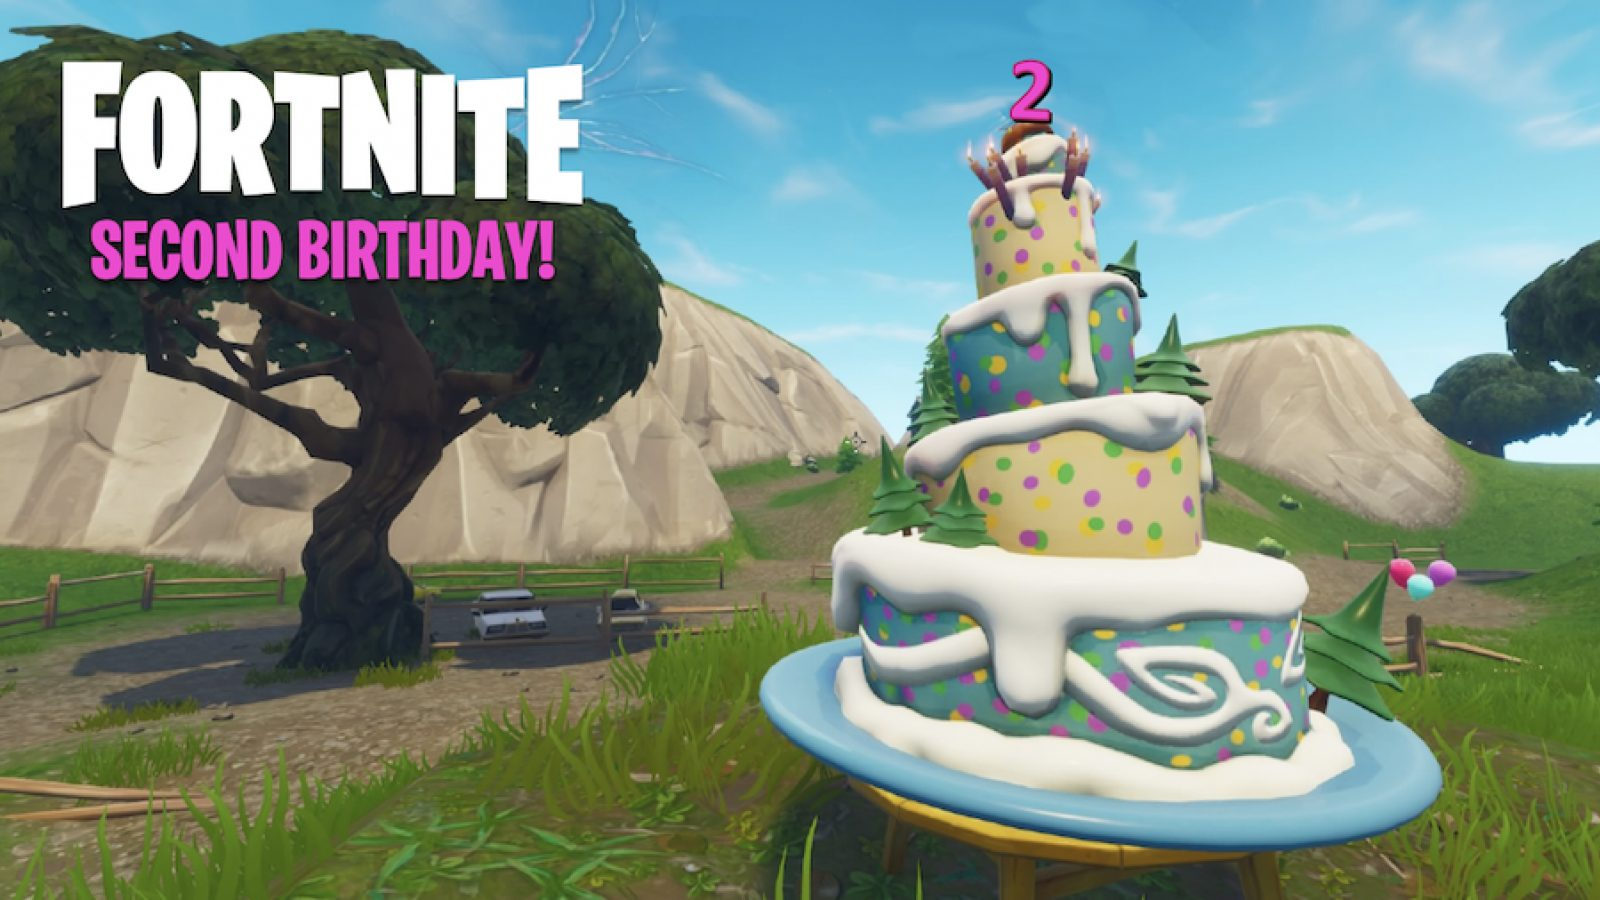 Fortnite Challenges 2nd Birthday Dance In Front Of Several Birthday Cakes Play Crazy Game